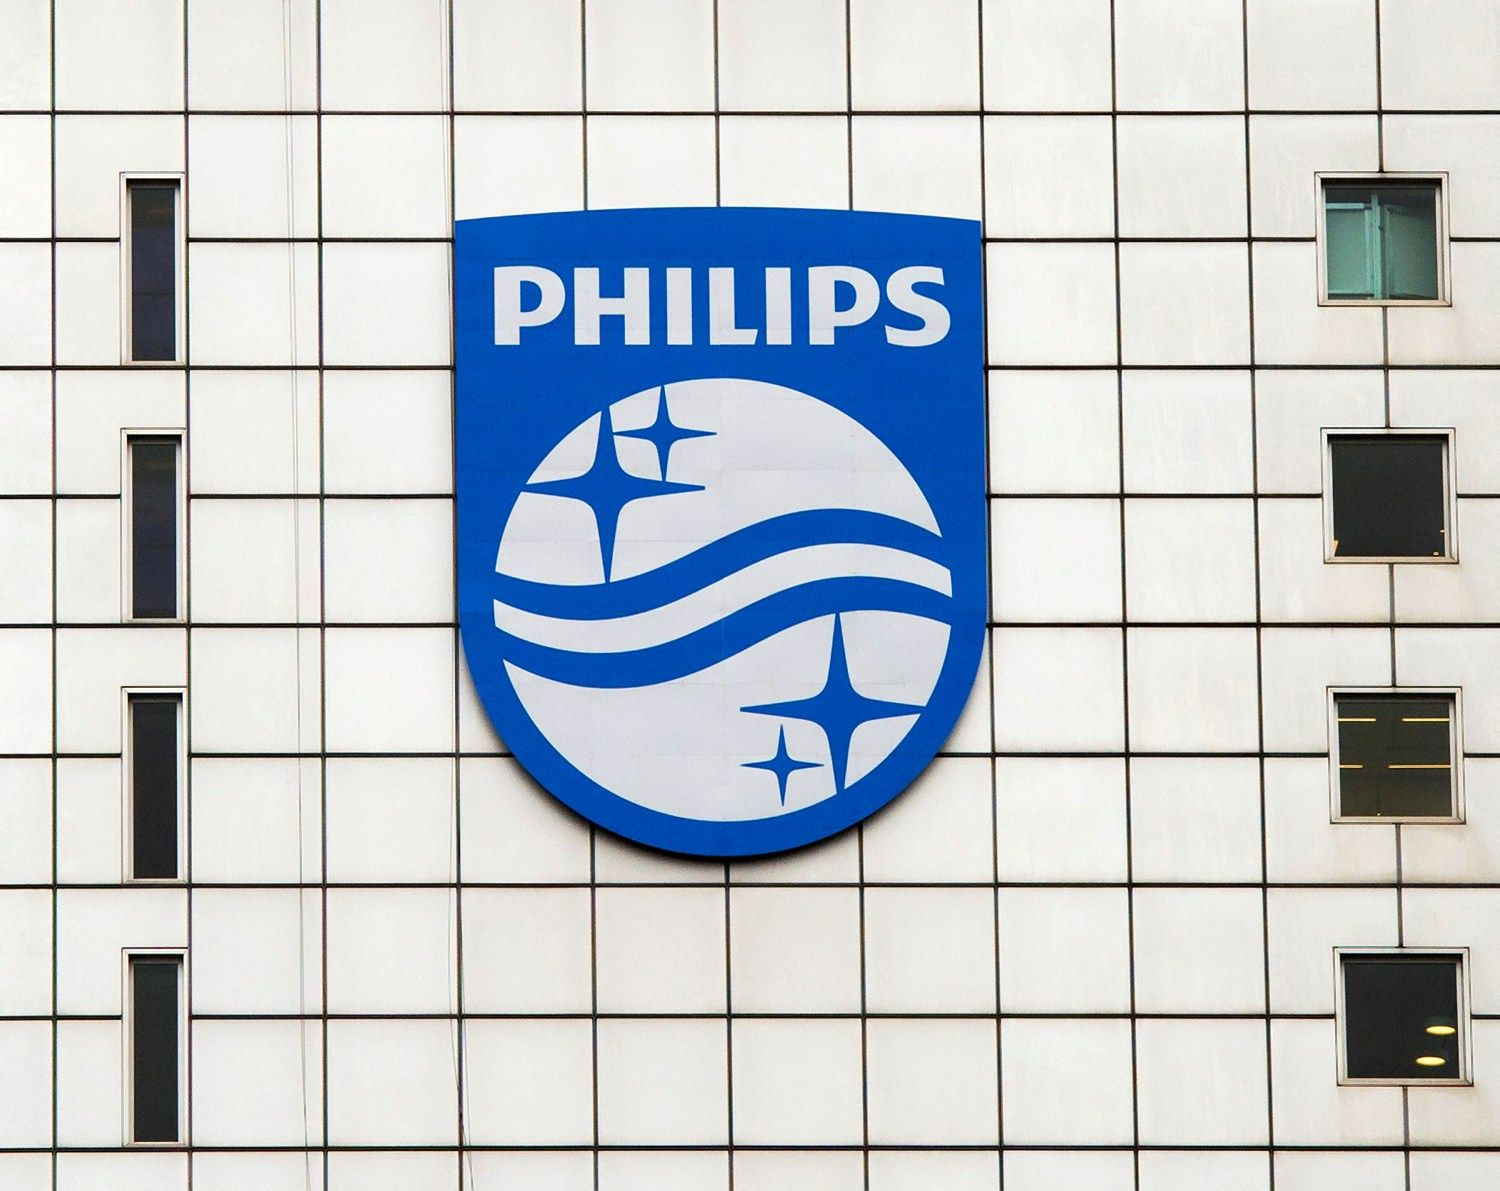 �Philips Lighting� IPO rezultatas � 750 mln. Eur